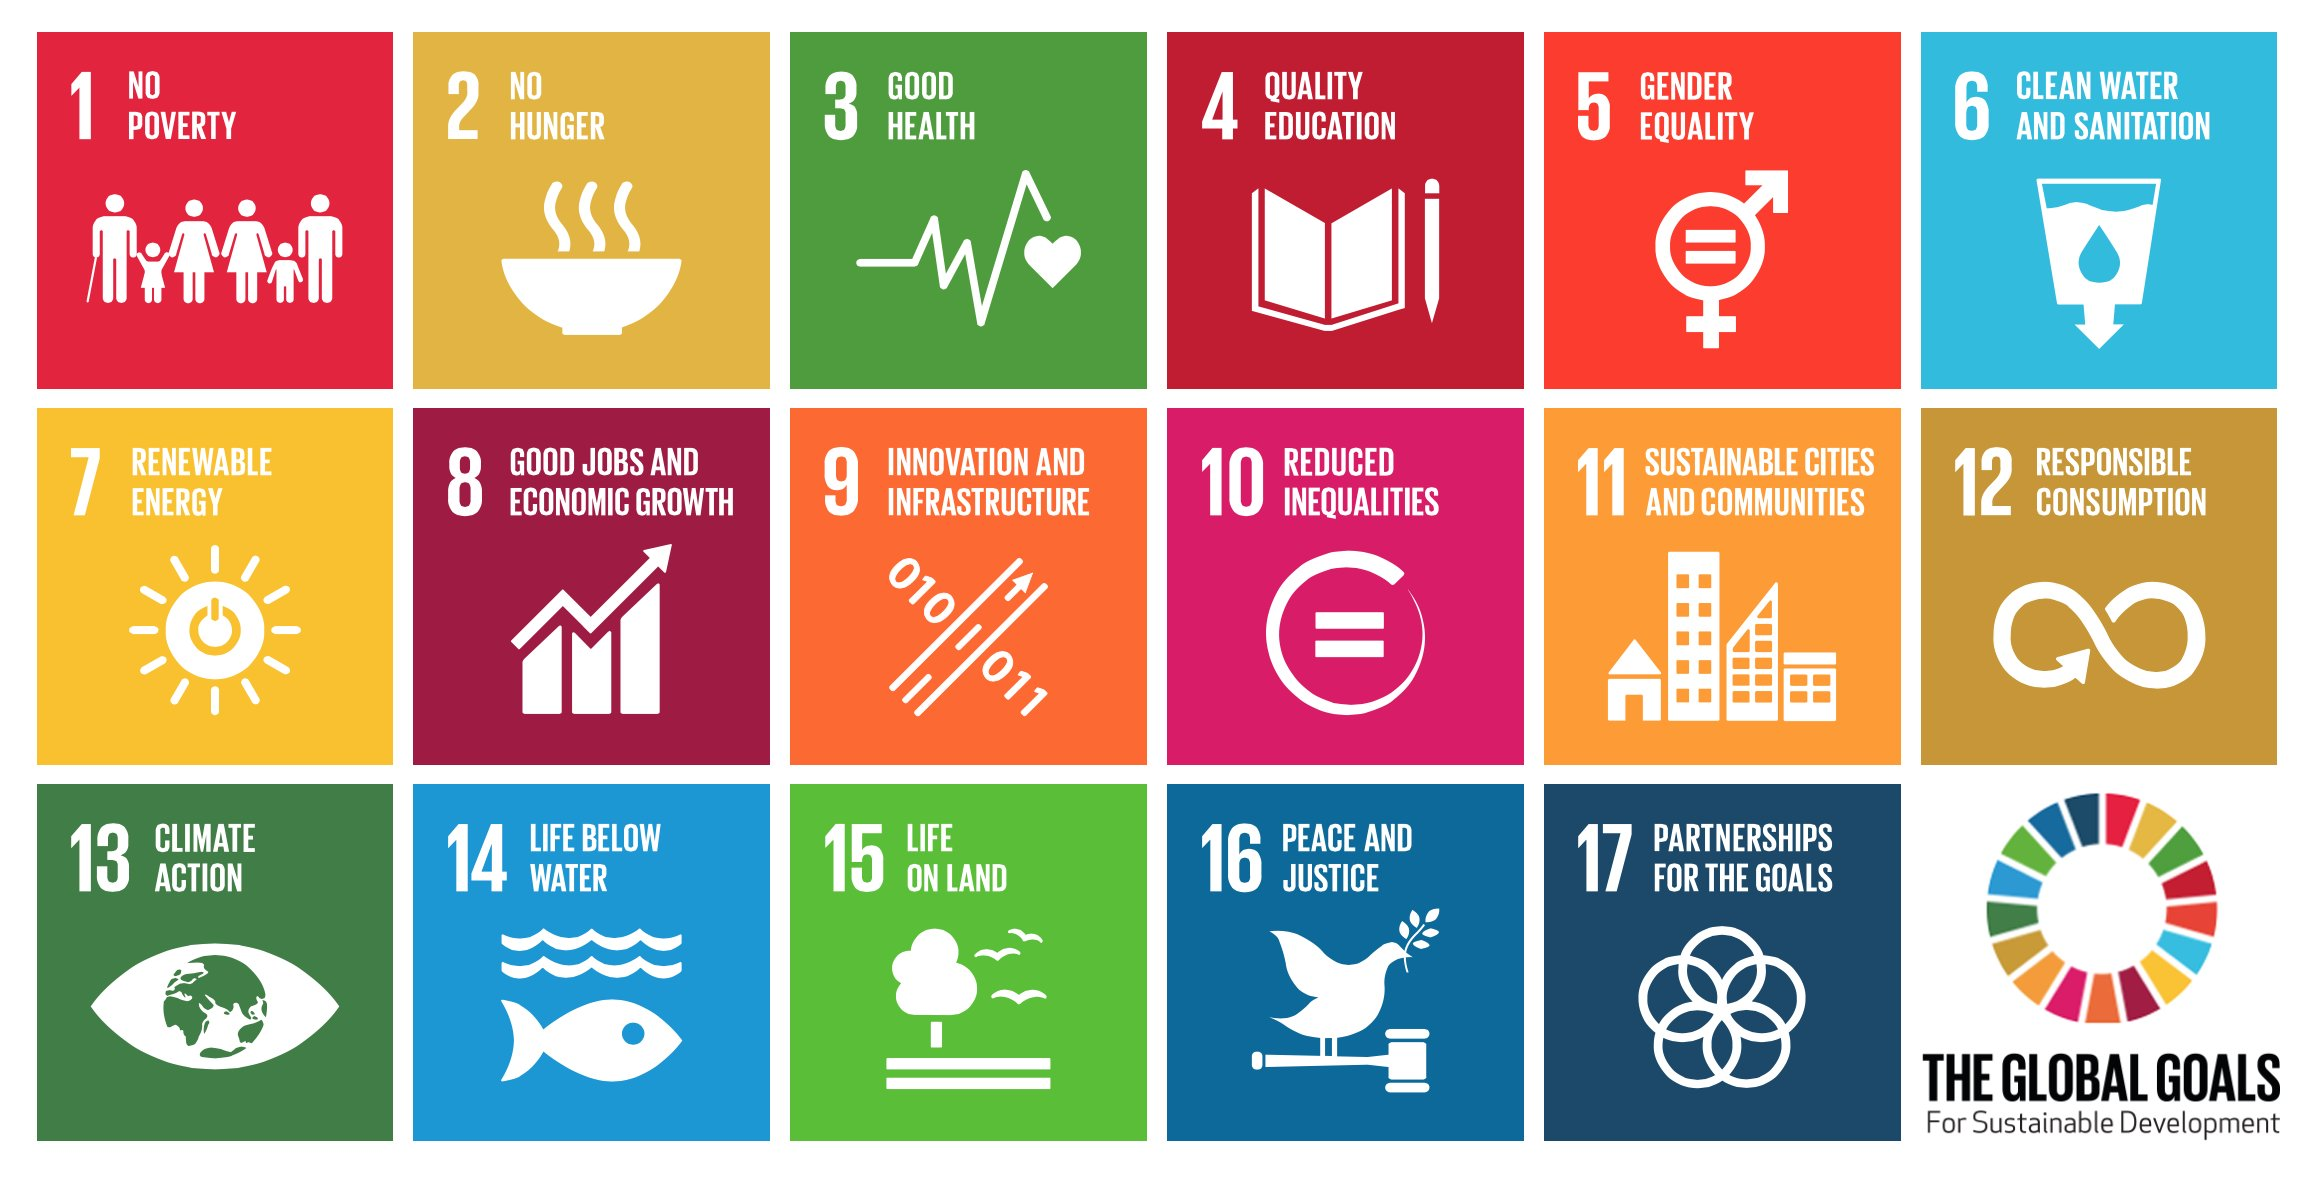 Check them out here:  www.globalgoals.org